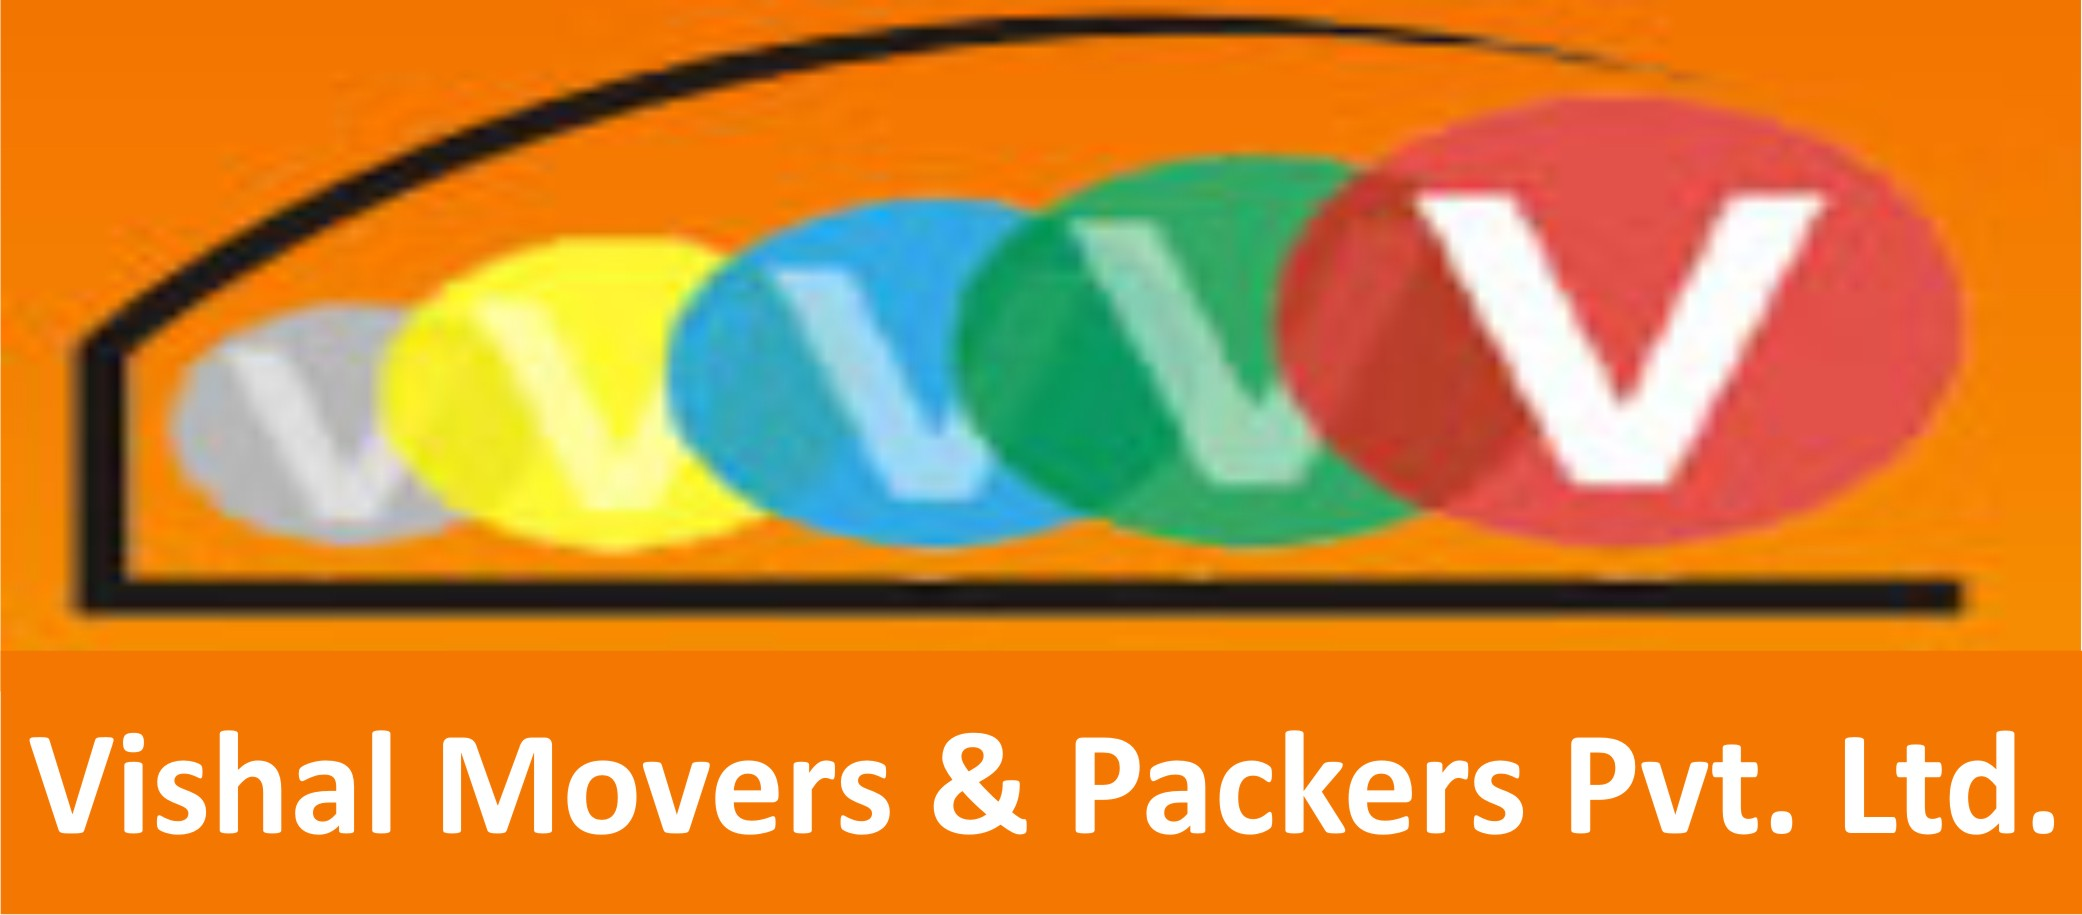 A Vishal Packers & Movers